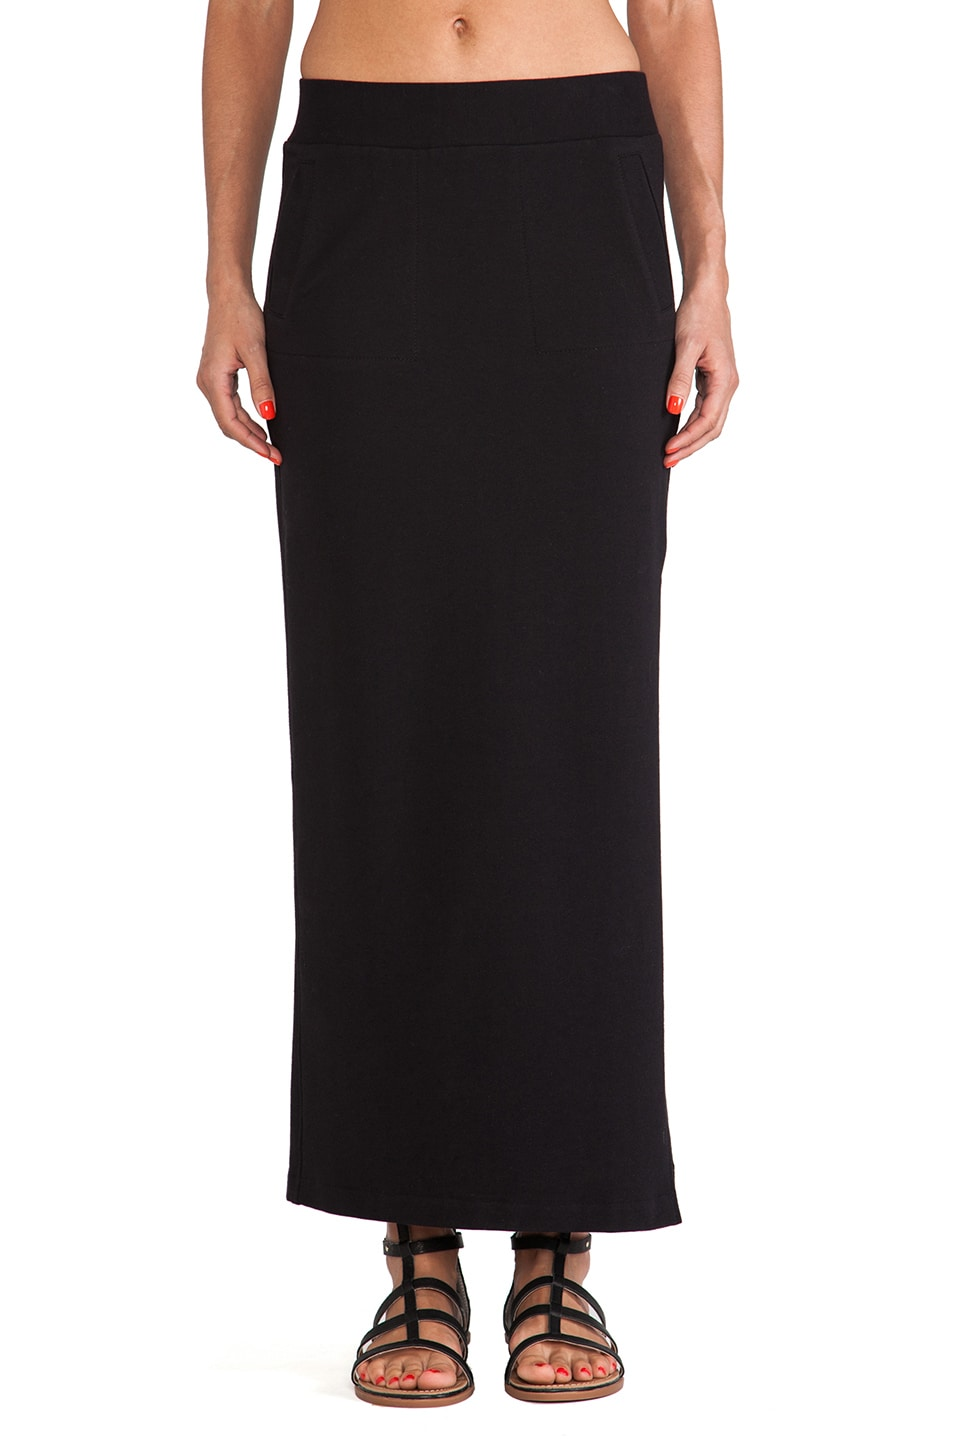 Norma Kamali Maxi Skirt in Black